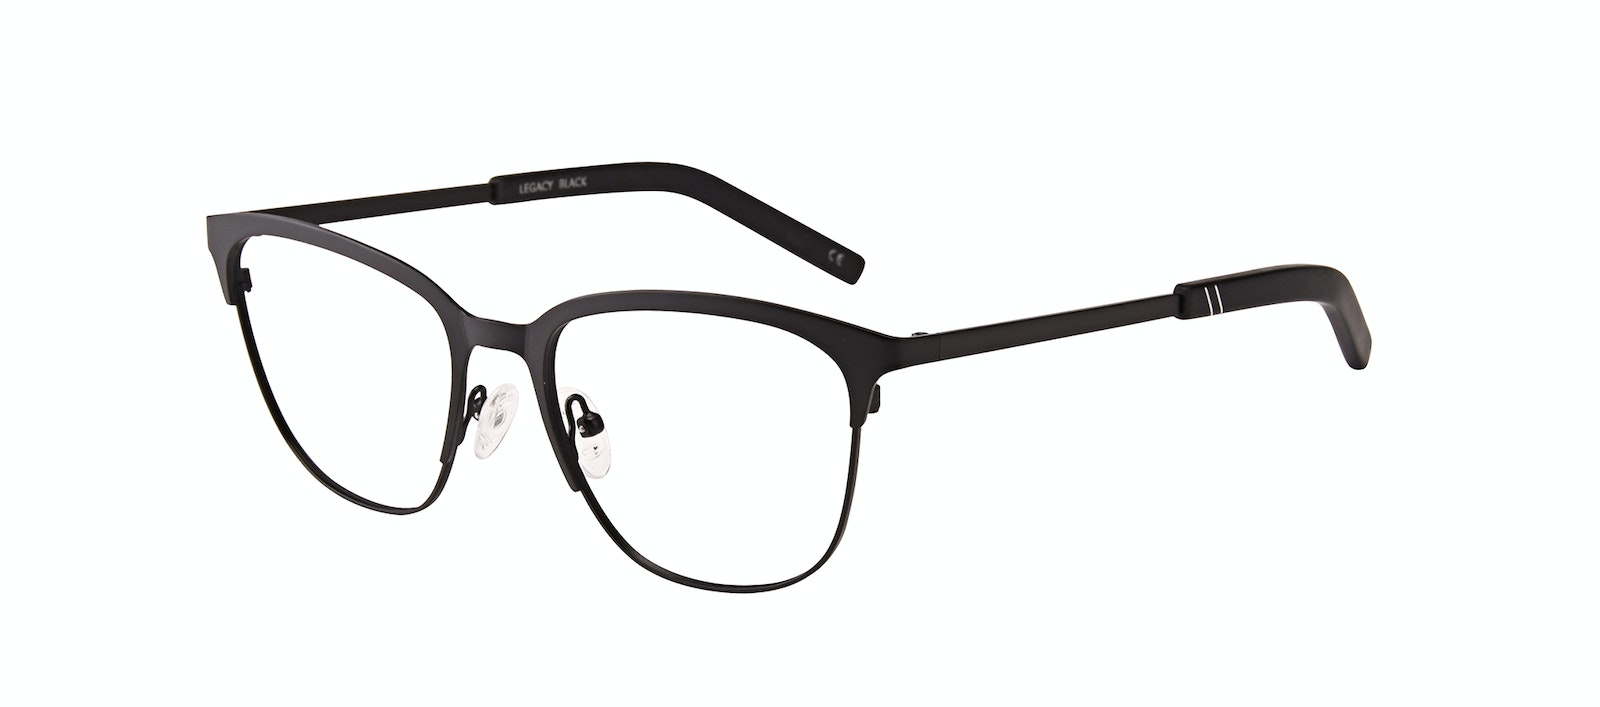 Affordable Fashion Glasses Rectangle Eyeglasses Men Legacy Black Tilt